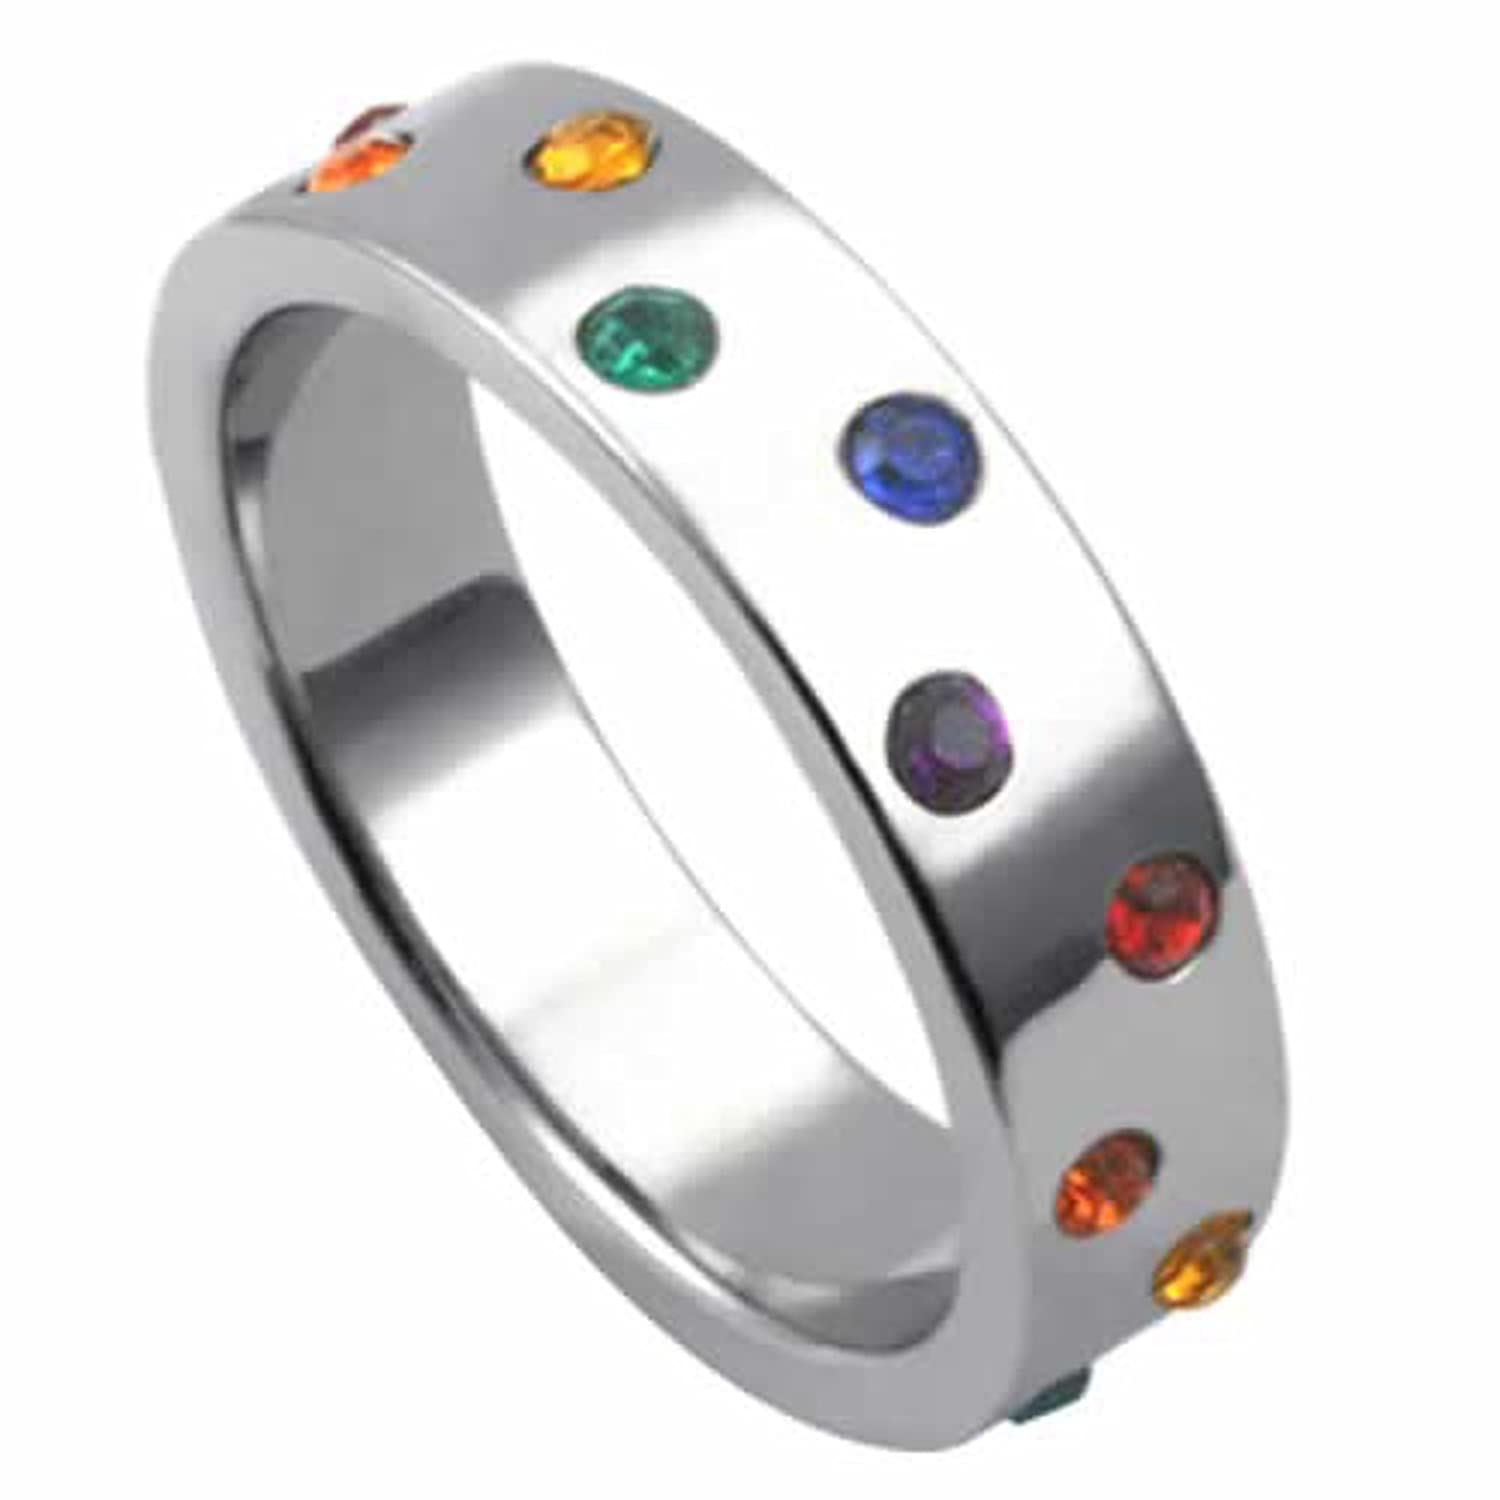 Amazon.com: Gay Pride Ring With Rainbow Colored Stones - Love Ring ...